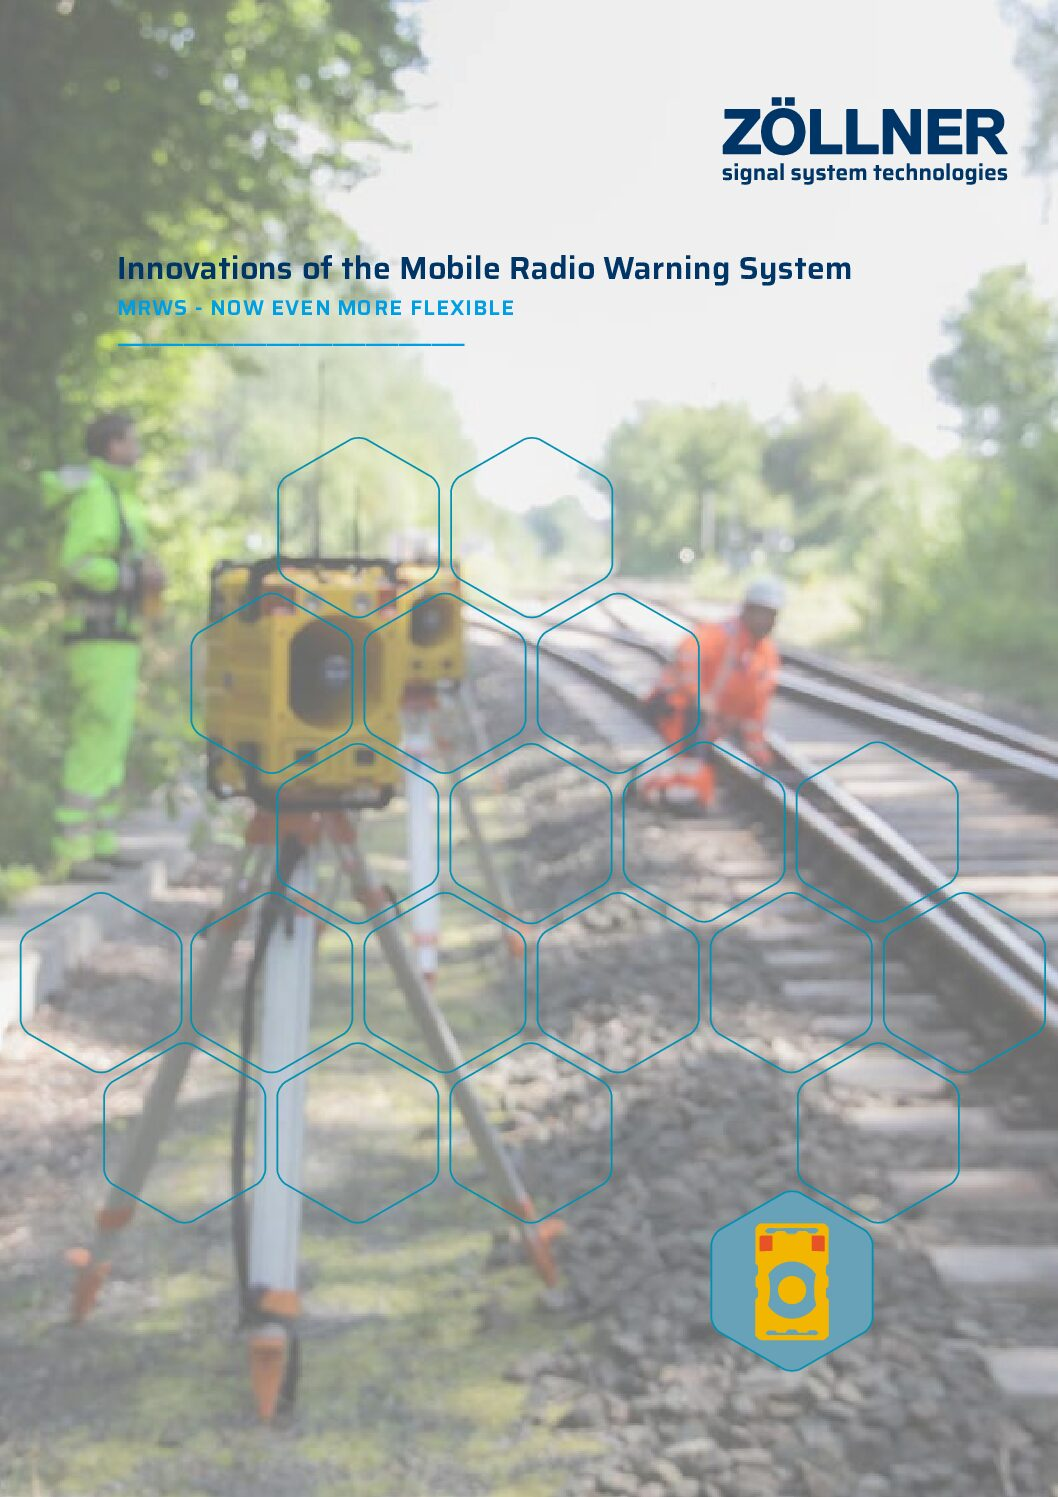 Innovations of the Mobile Radio Warning System (MRWS)